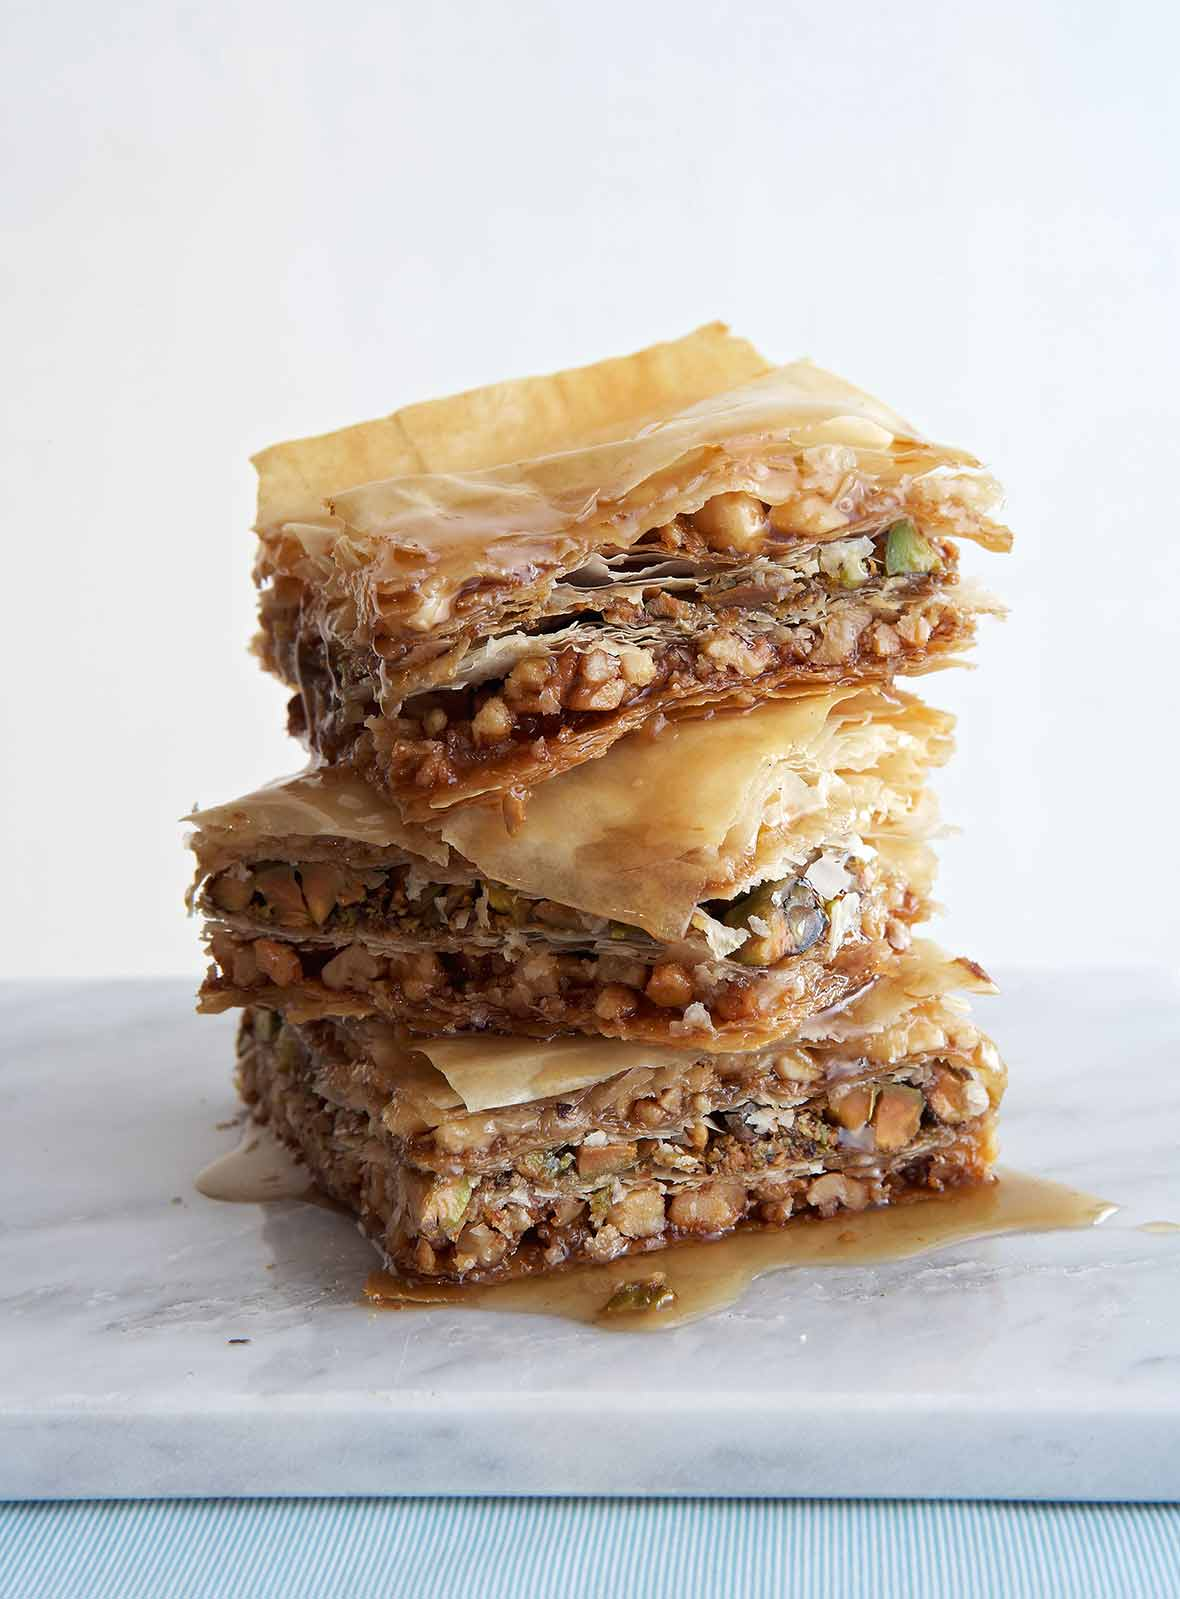 Three pieces of vegan baklava stacked on top of each other.